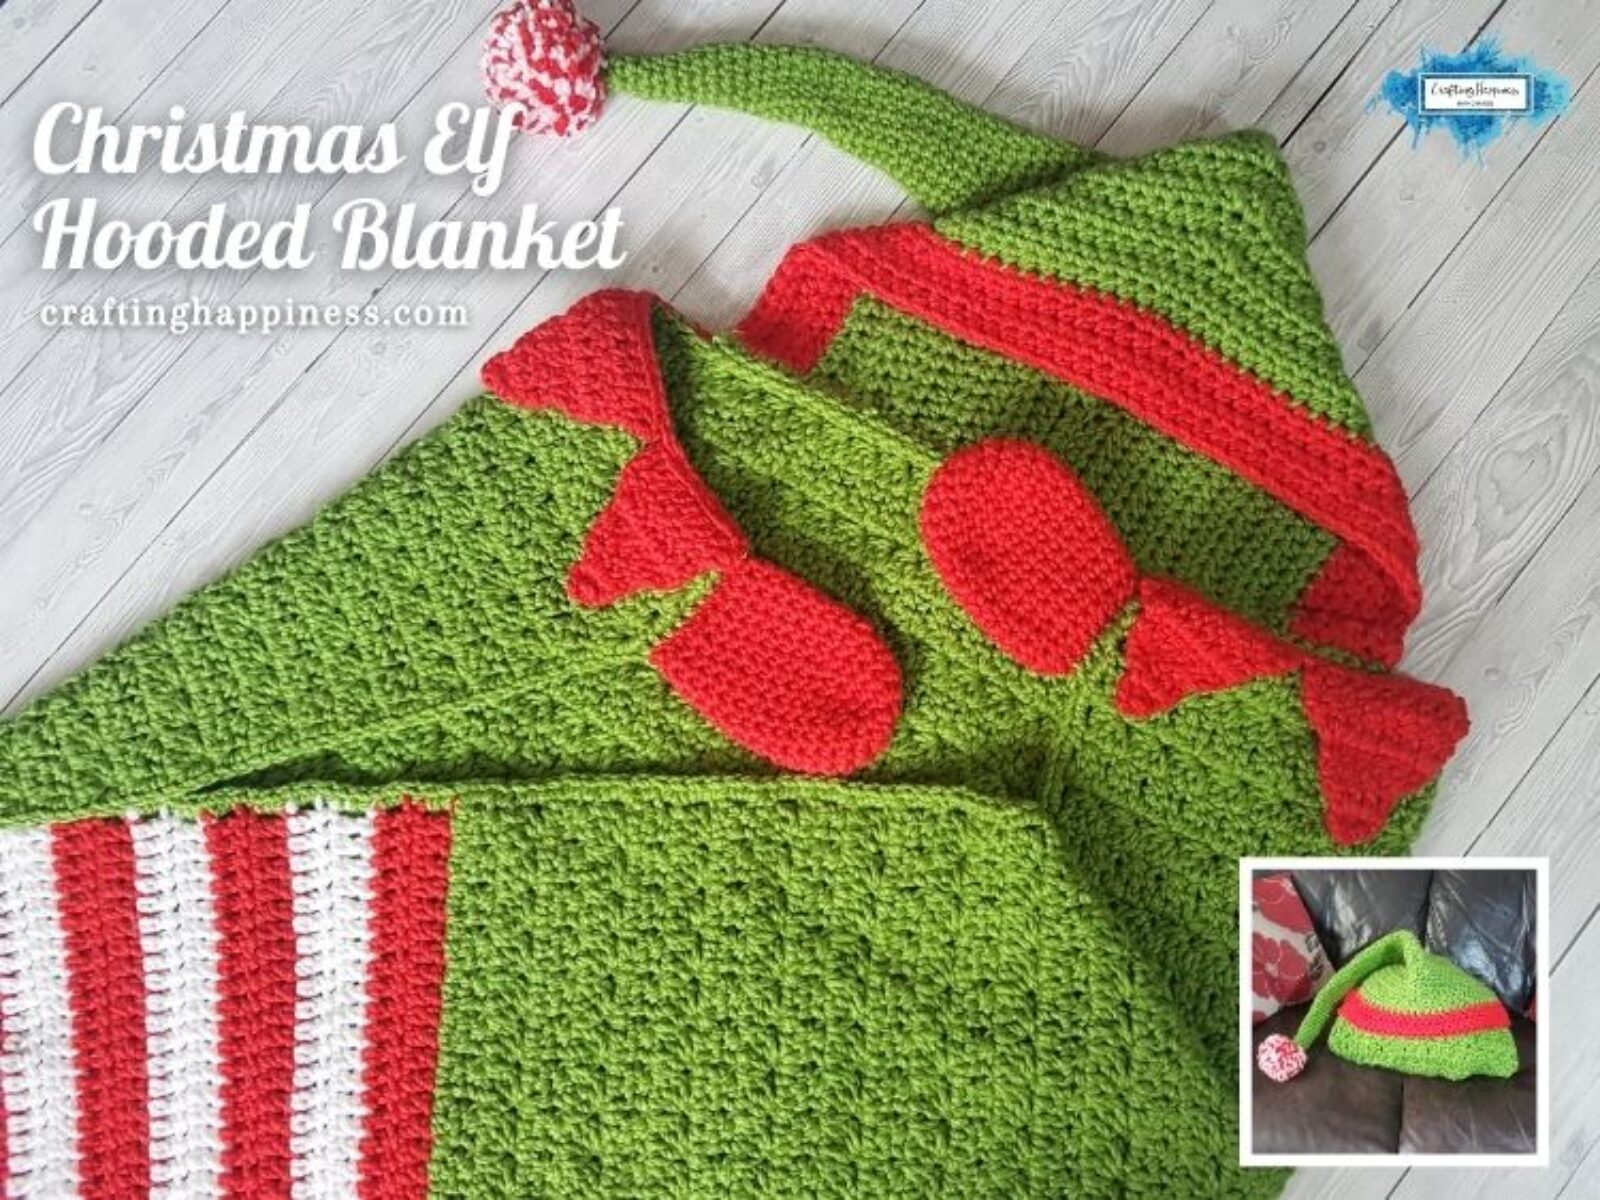 FACEBOOK BLOG POSTER Christmas Elf Hooded Blanket